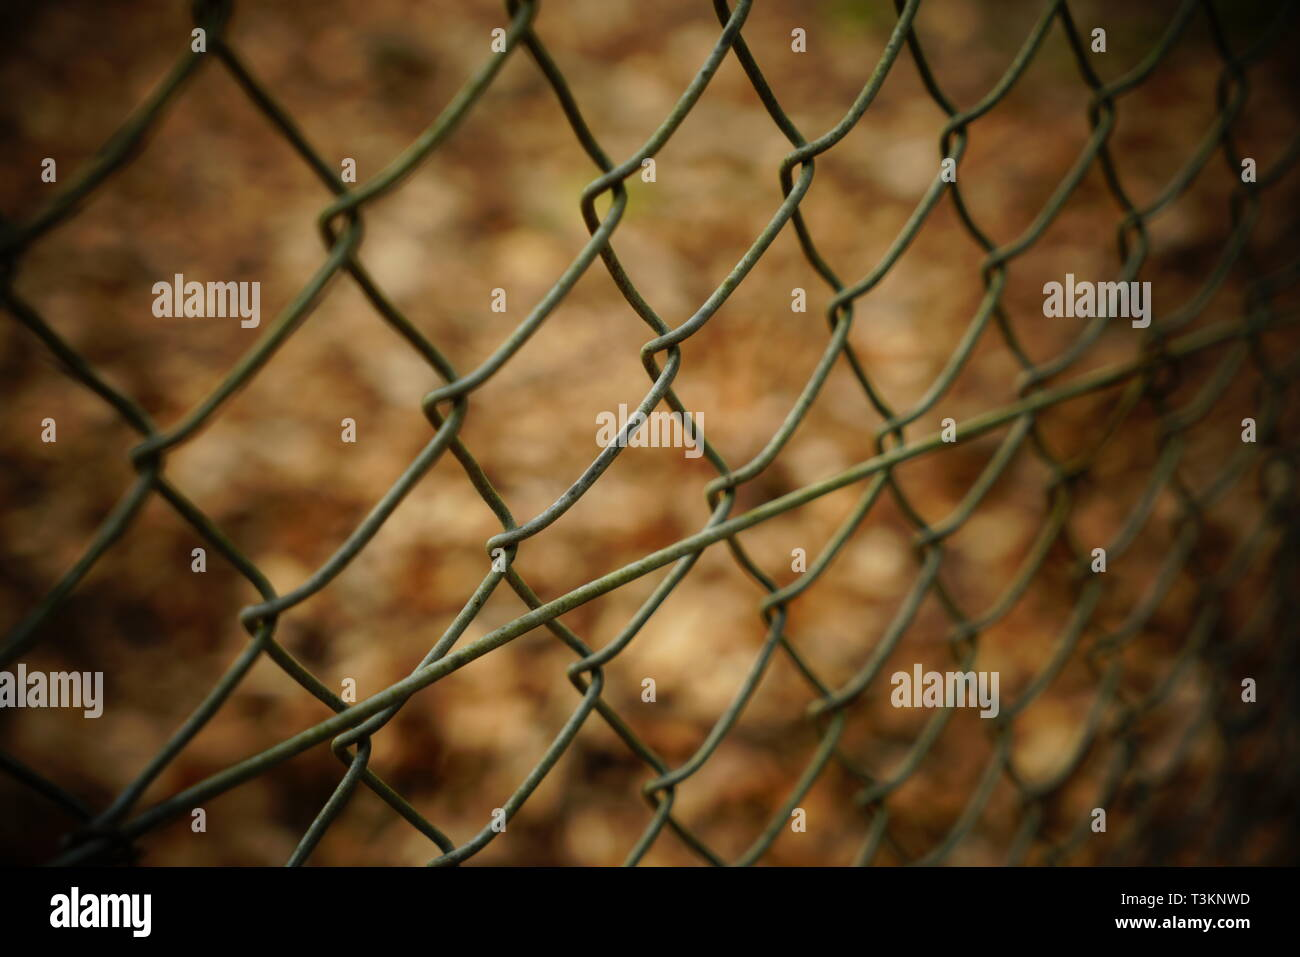 Chain link wire fence with blurred background. - Stock Image